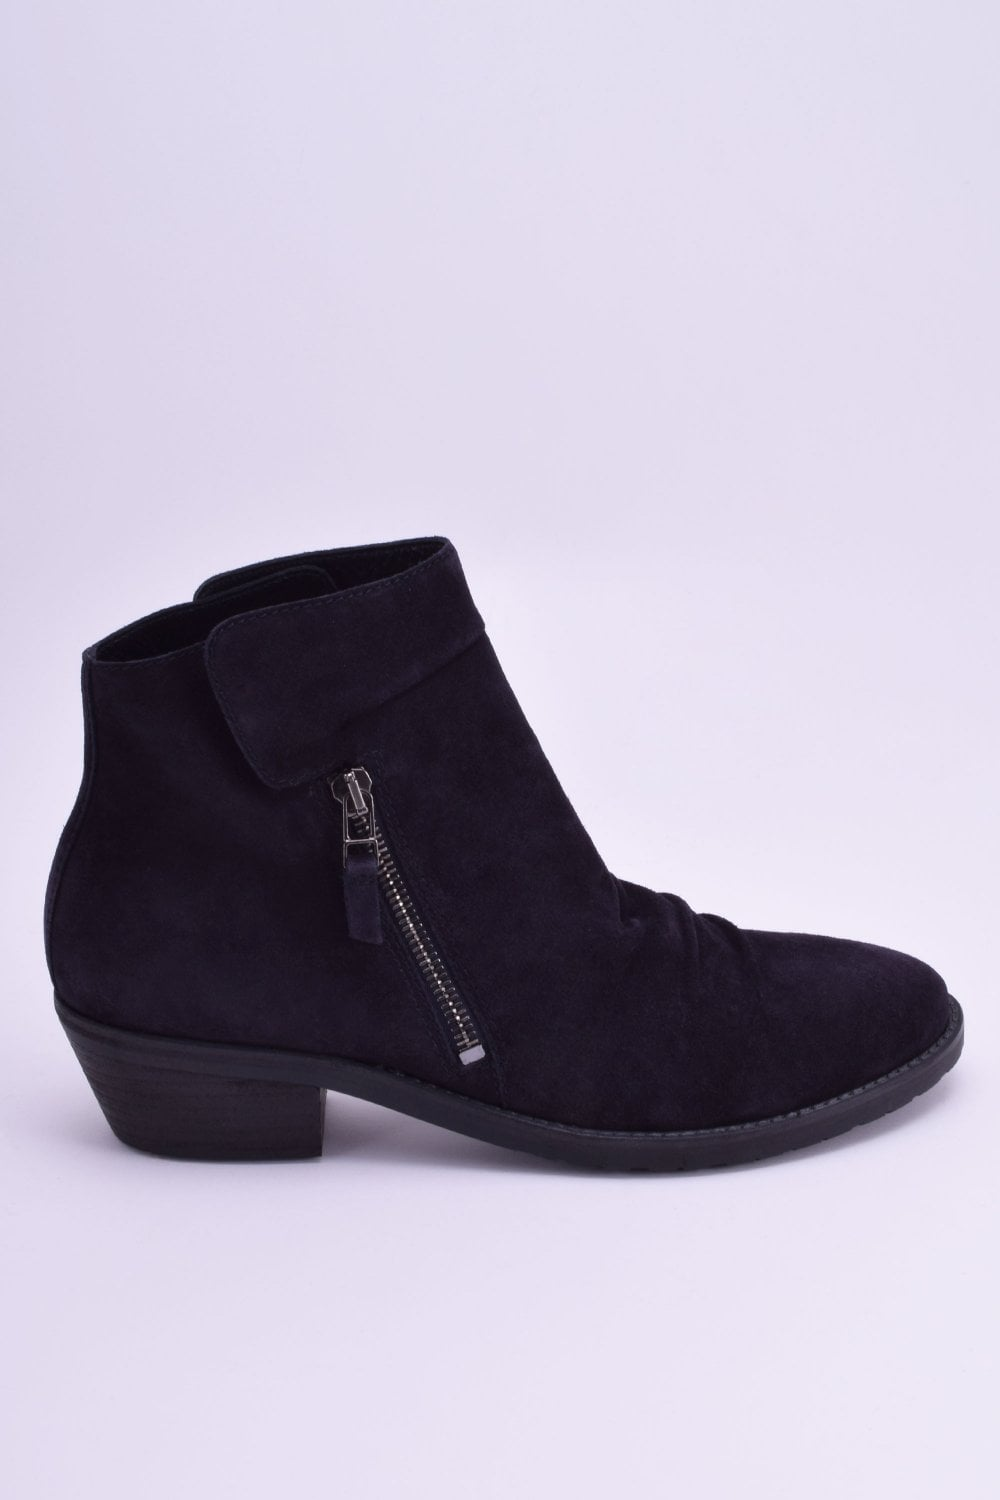 skate shoes huge sale preview of Kim Suede Ankle Boot in Pacific